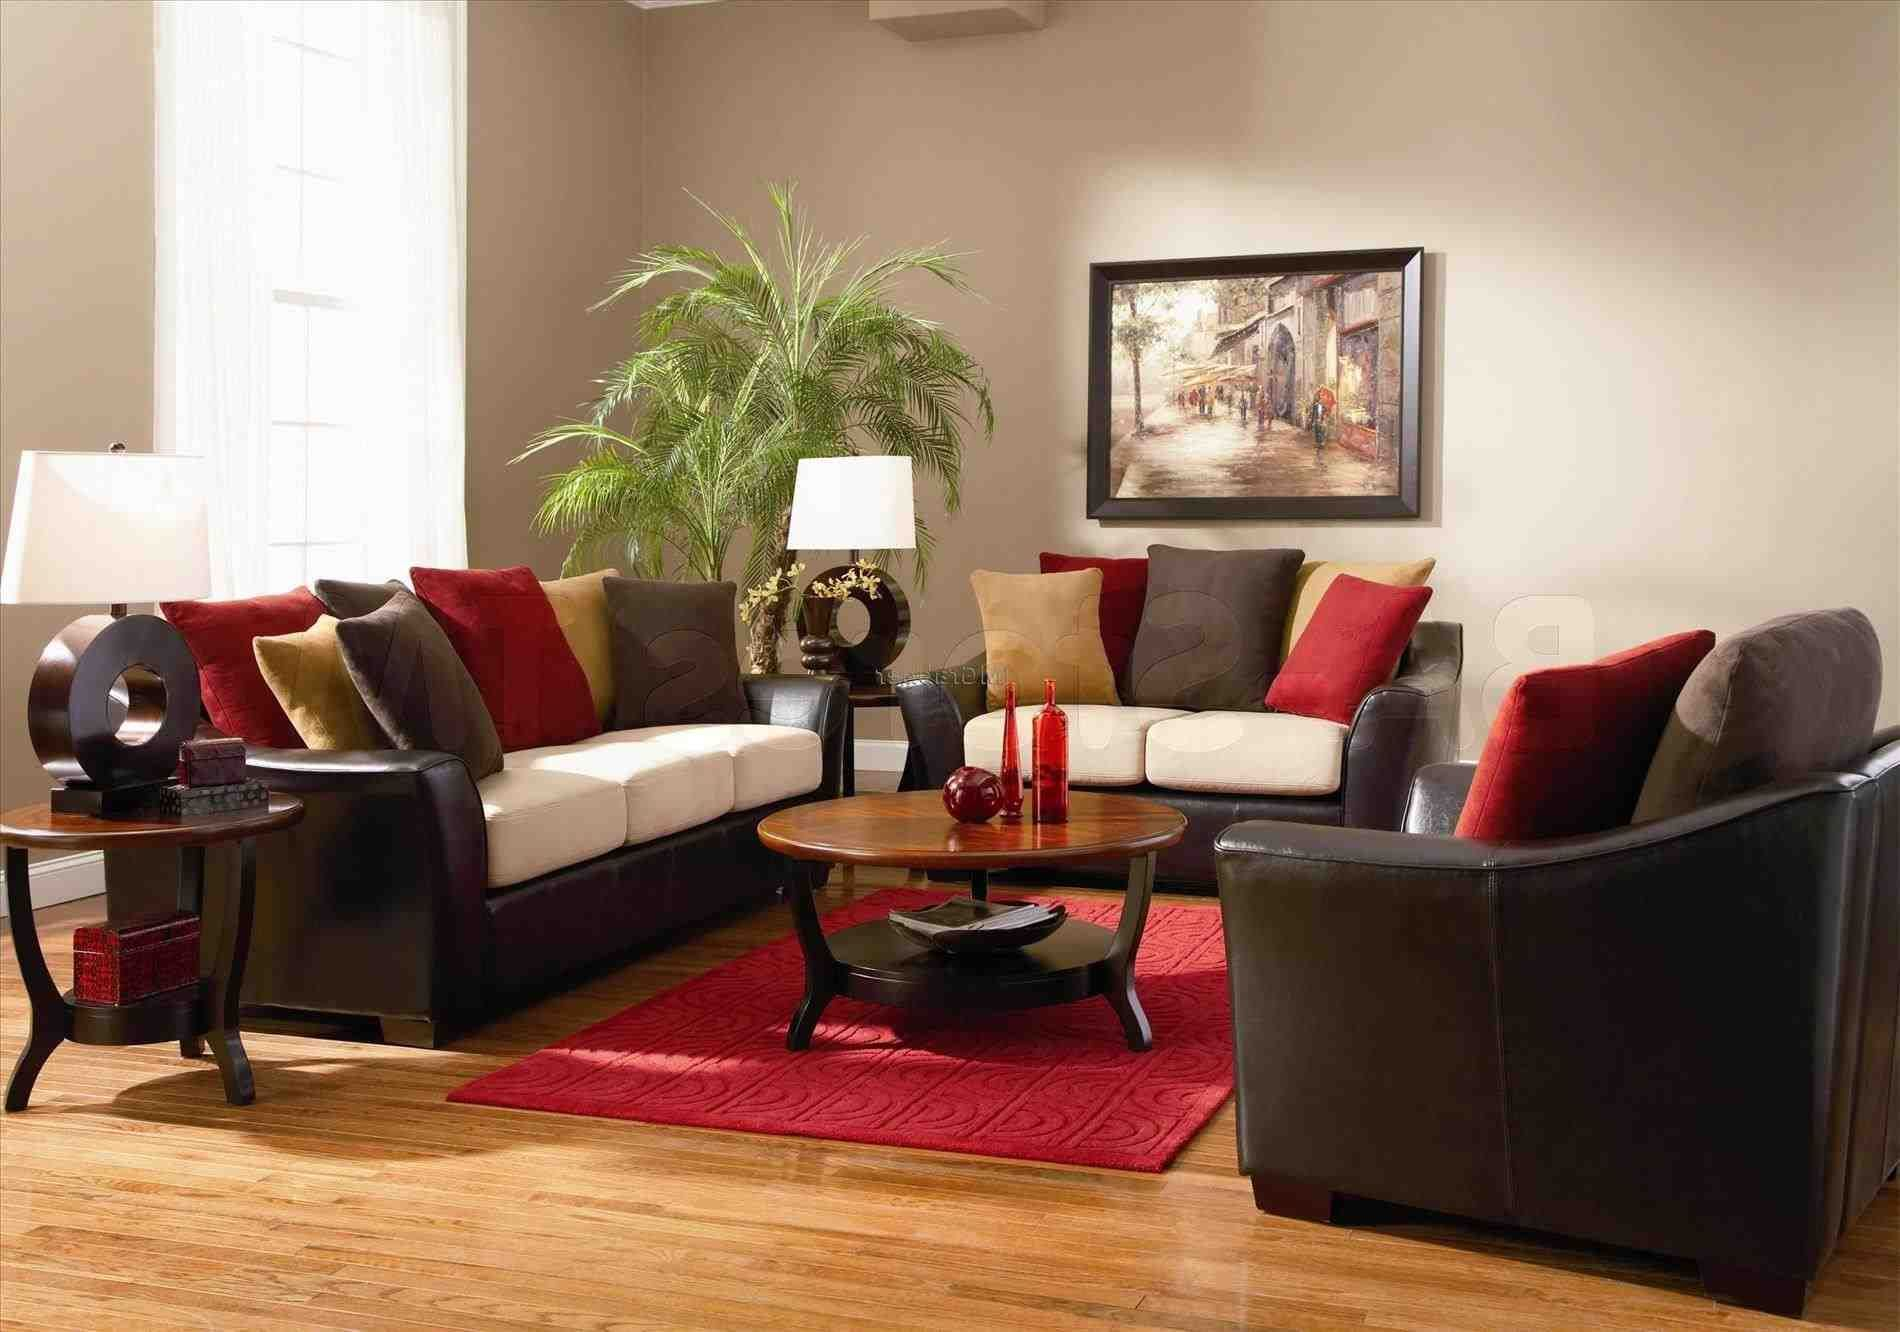 Cheap Living Room Furniture Calgary - king size bedroom furniture